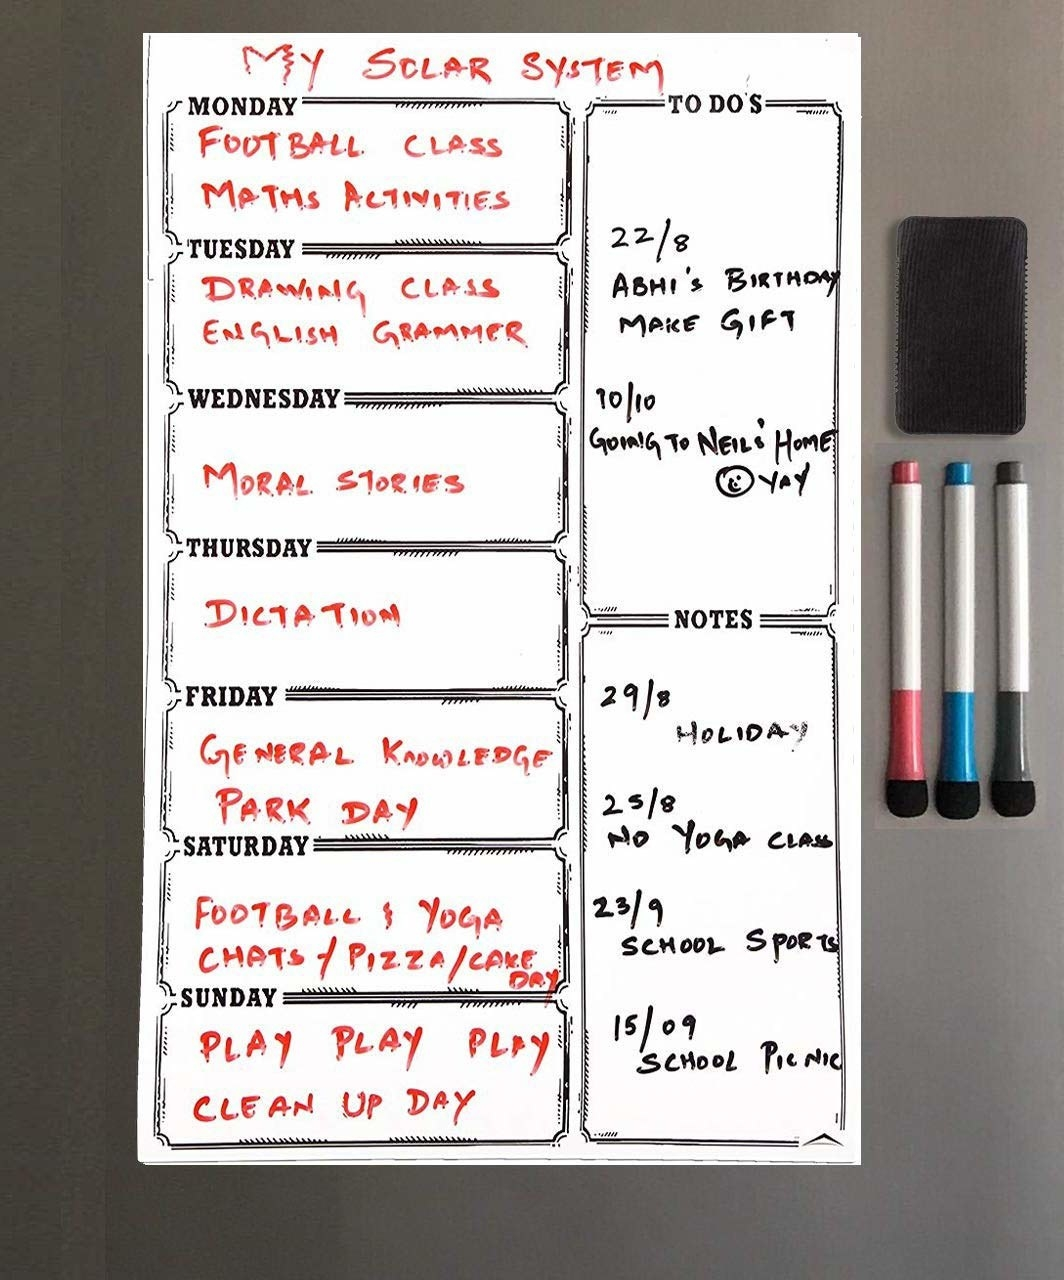 A whiteboard stuck magnetically to a fridge with a person's task outlined on it, besides three marker pens.